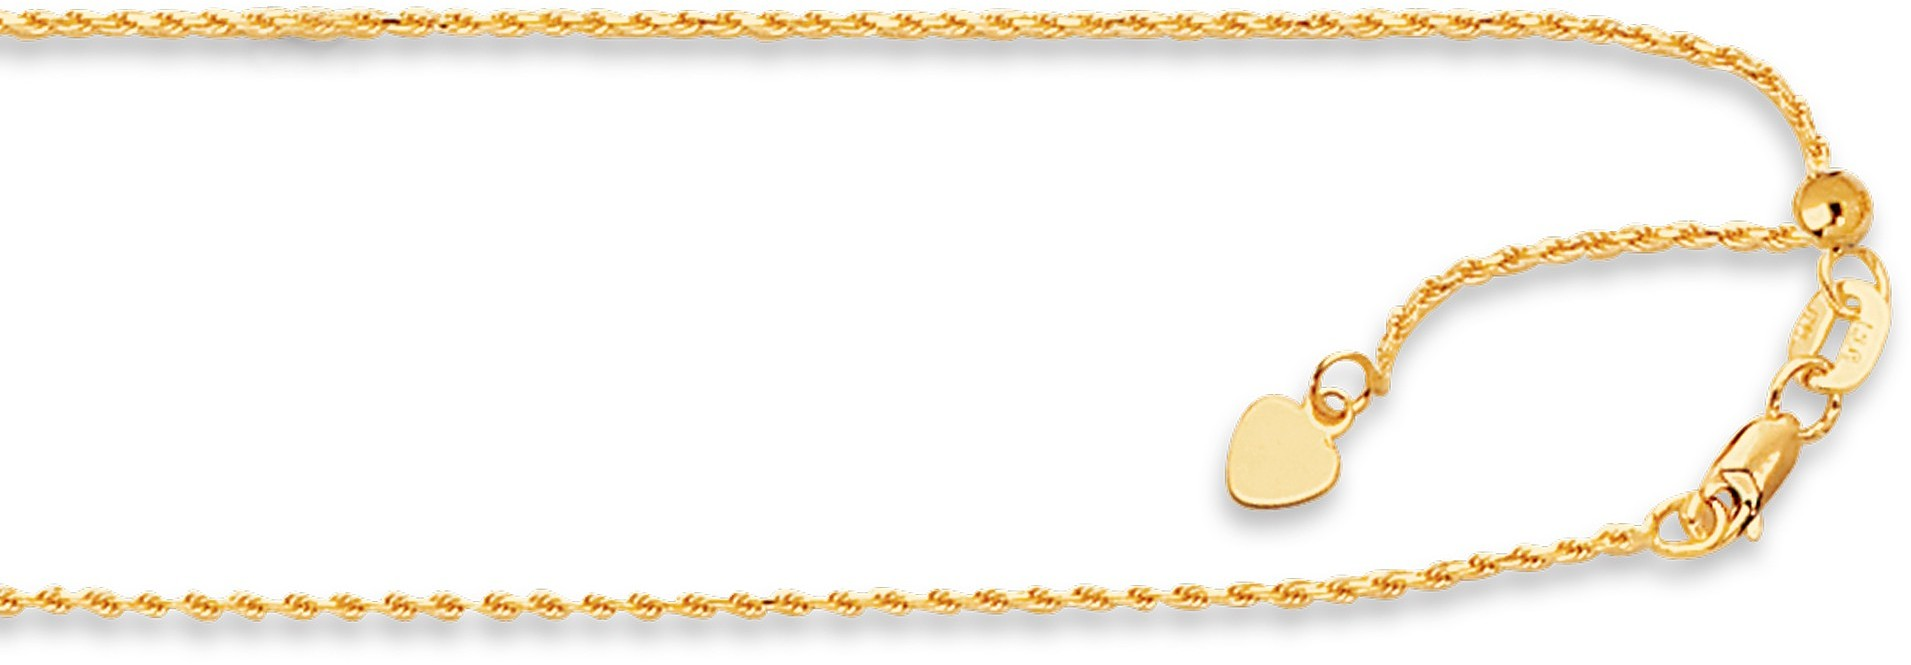 "22"" 14K Yellow Gold 1.1mm (0.04"") Polished Diamond Cut Adjustable Royal Rope Chain w/ Lobster Clasp"